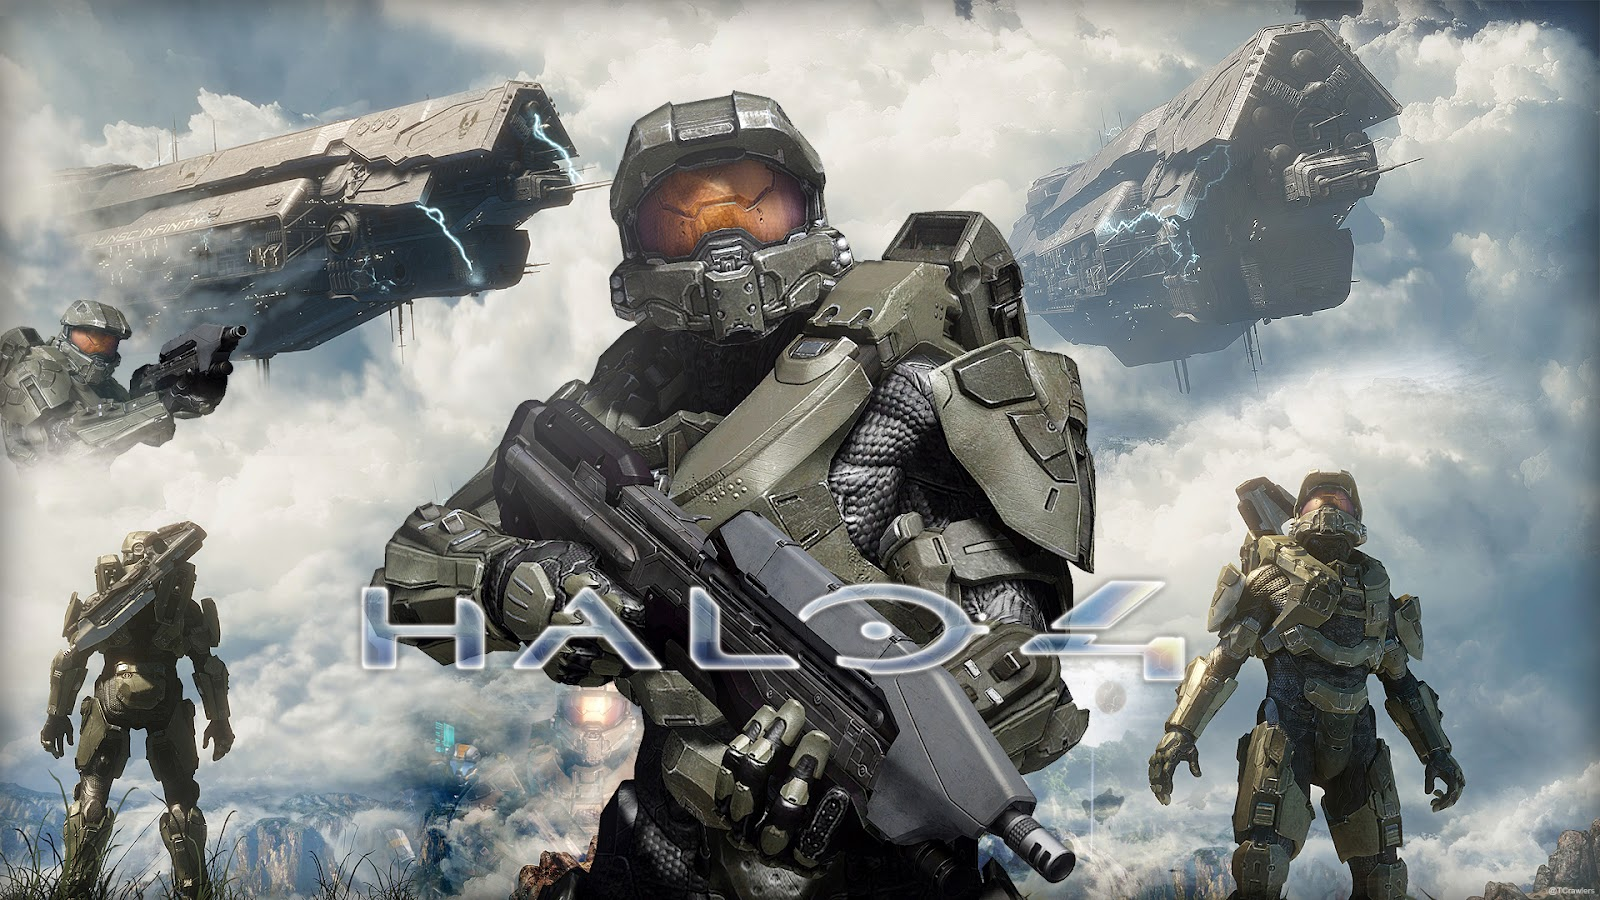 Wallpaper halo 4 e3 wallpaper http4bpspot ntbawuaxsbat9dwvbis0ui halo 4 high resolution picture wallpapers voltagebd Choice Image